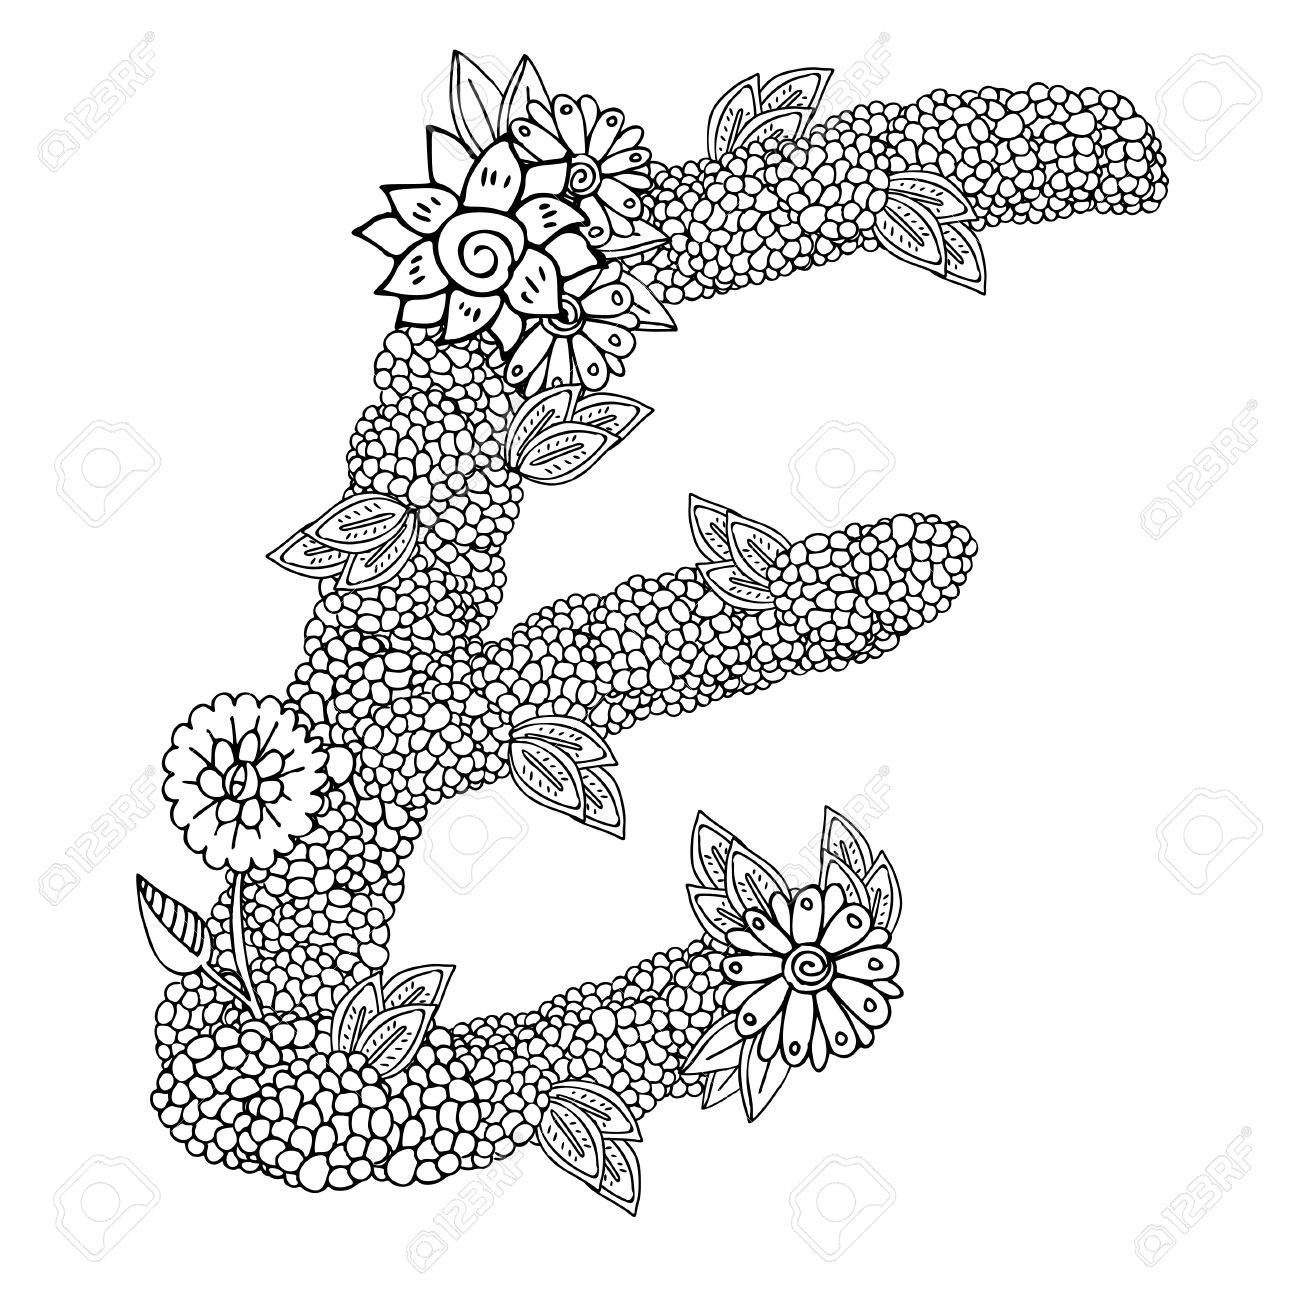 Coloring pages for letter e - Shaped Pattern Of Capital Letter E Decorated With Floral Ornament Coloring Book Page For Adult